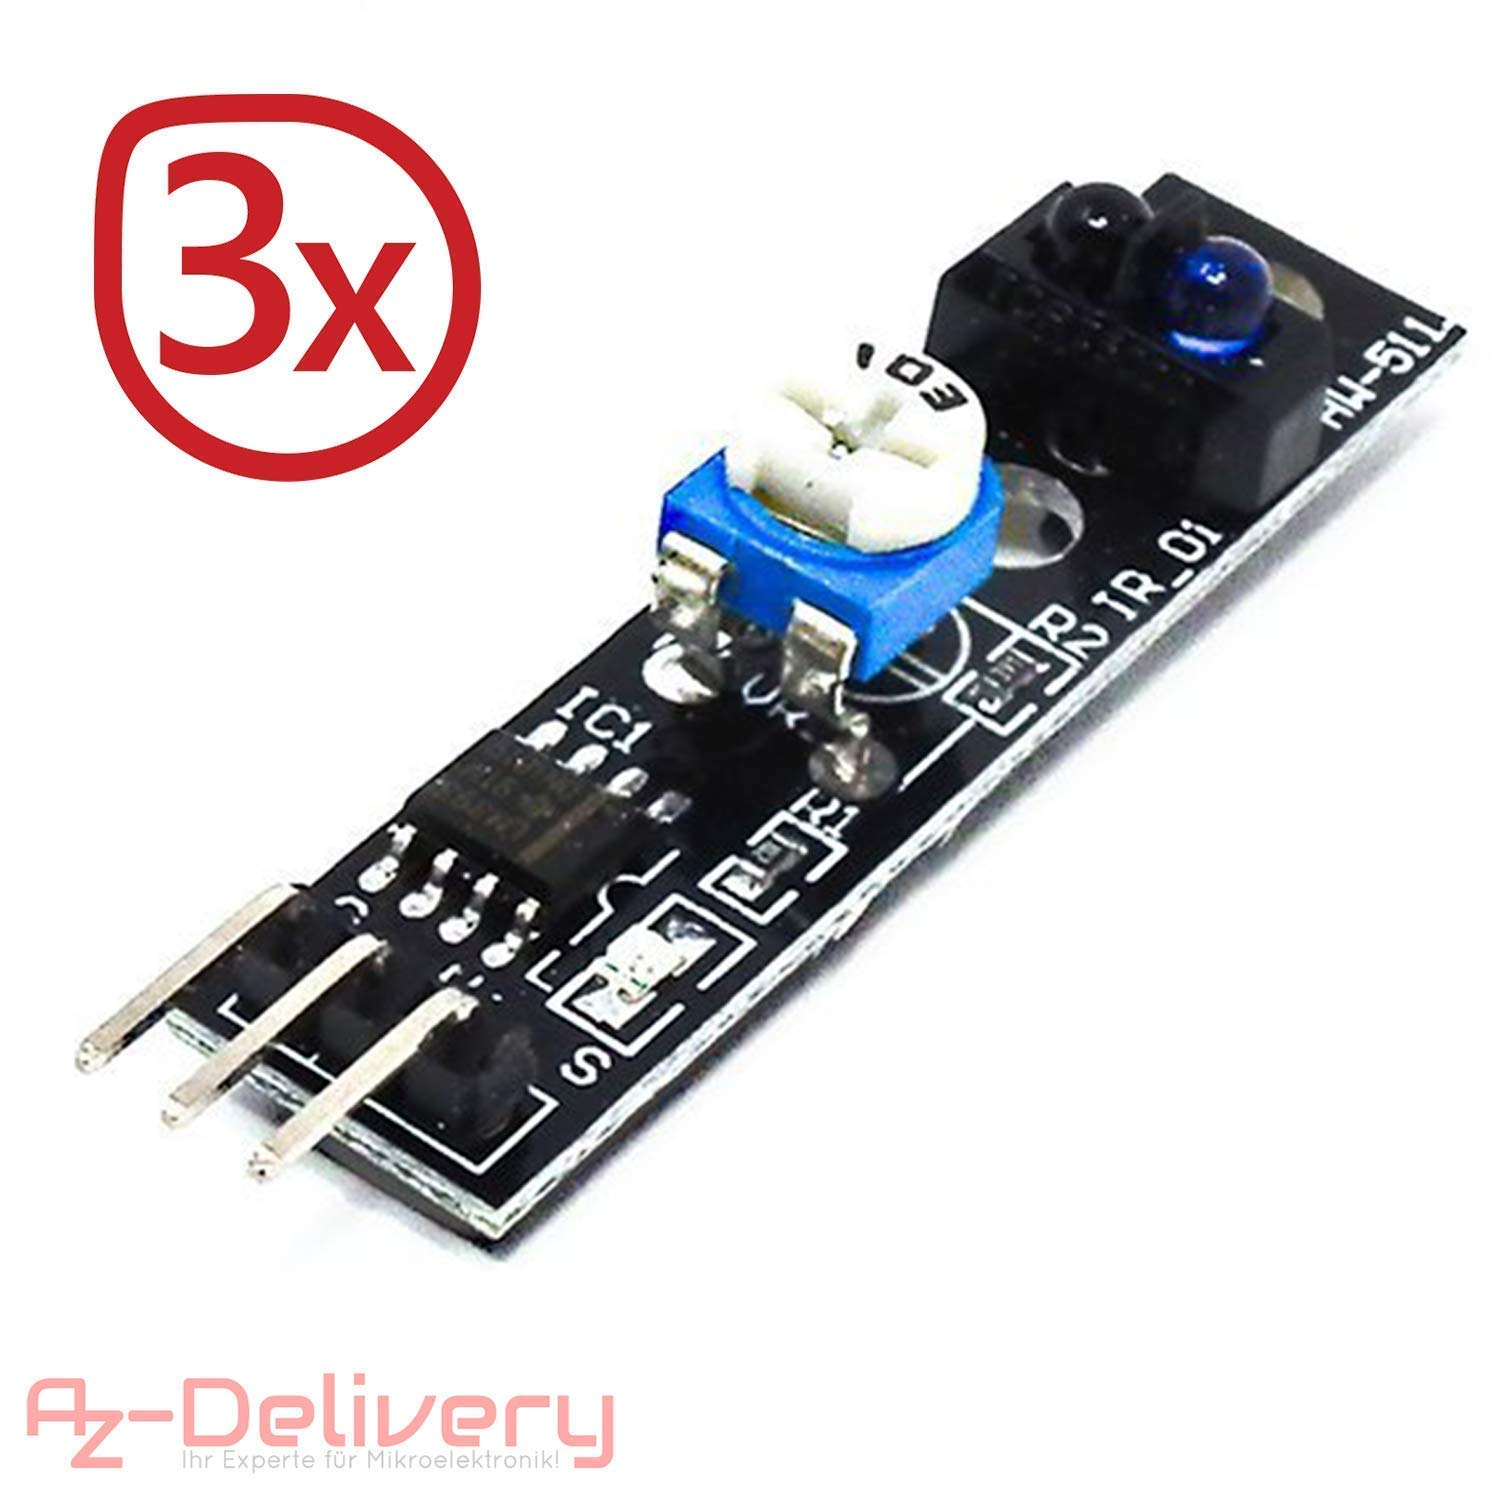 AZDelivery ⭐⭐⭐⭐⭐ 3 x Line Follower TCRT5000 Line Tracking Sensor Module for Arduino